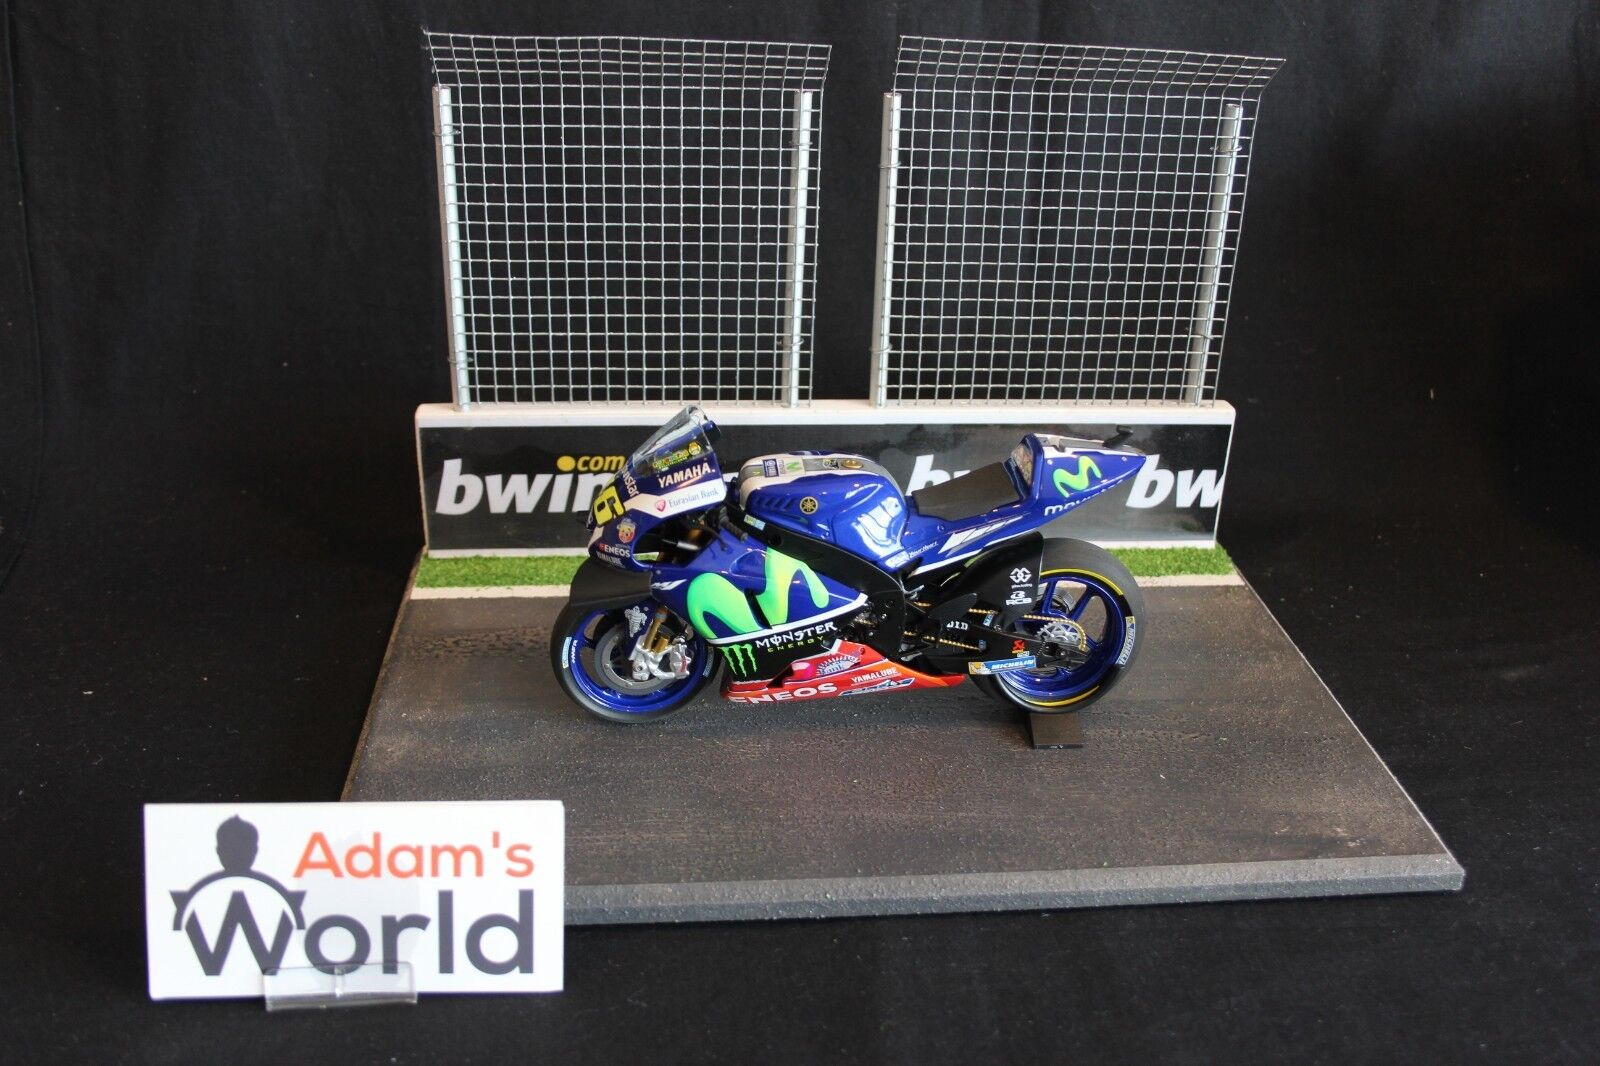 Minichamps Yamaha YZR-M1 2016 1 12  46 Valentino Rossi Free Practice Sepang